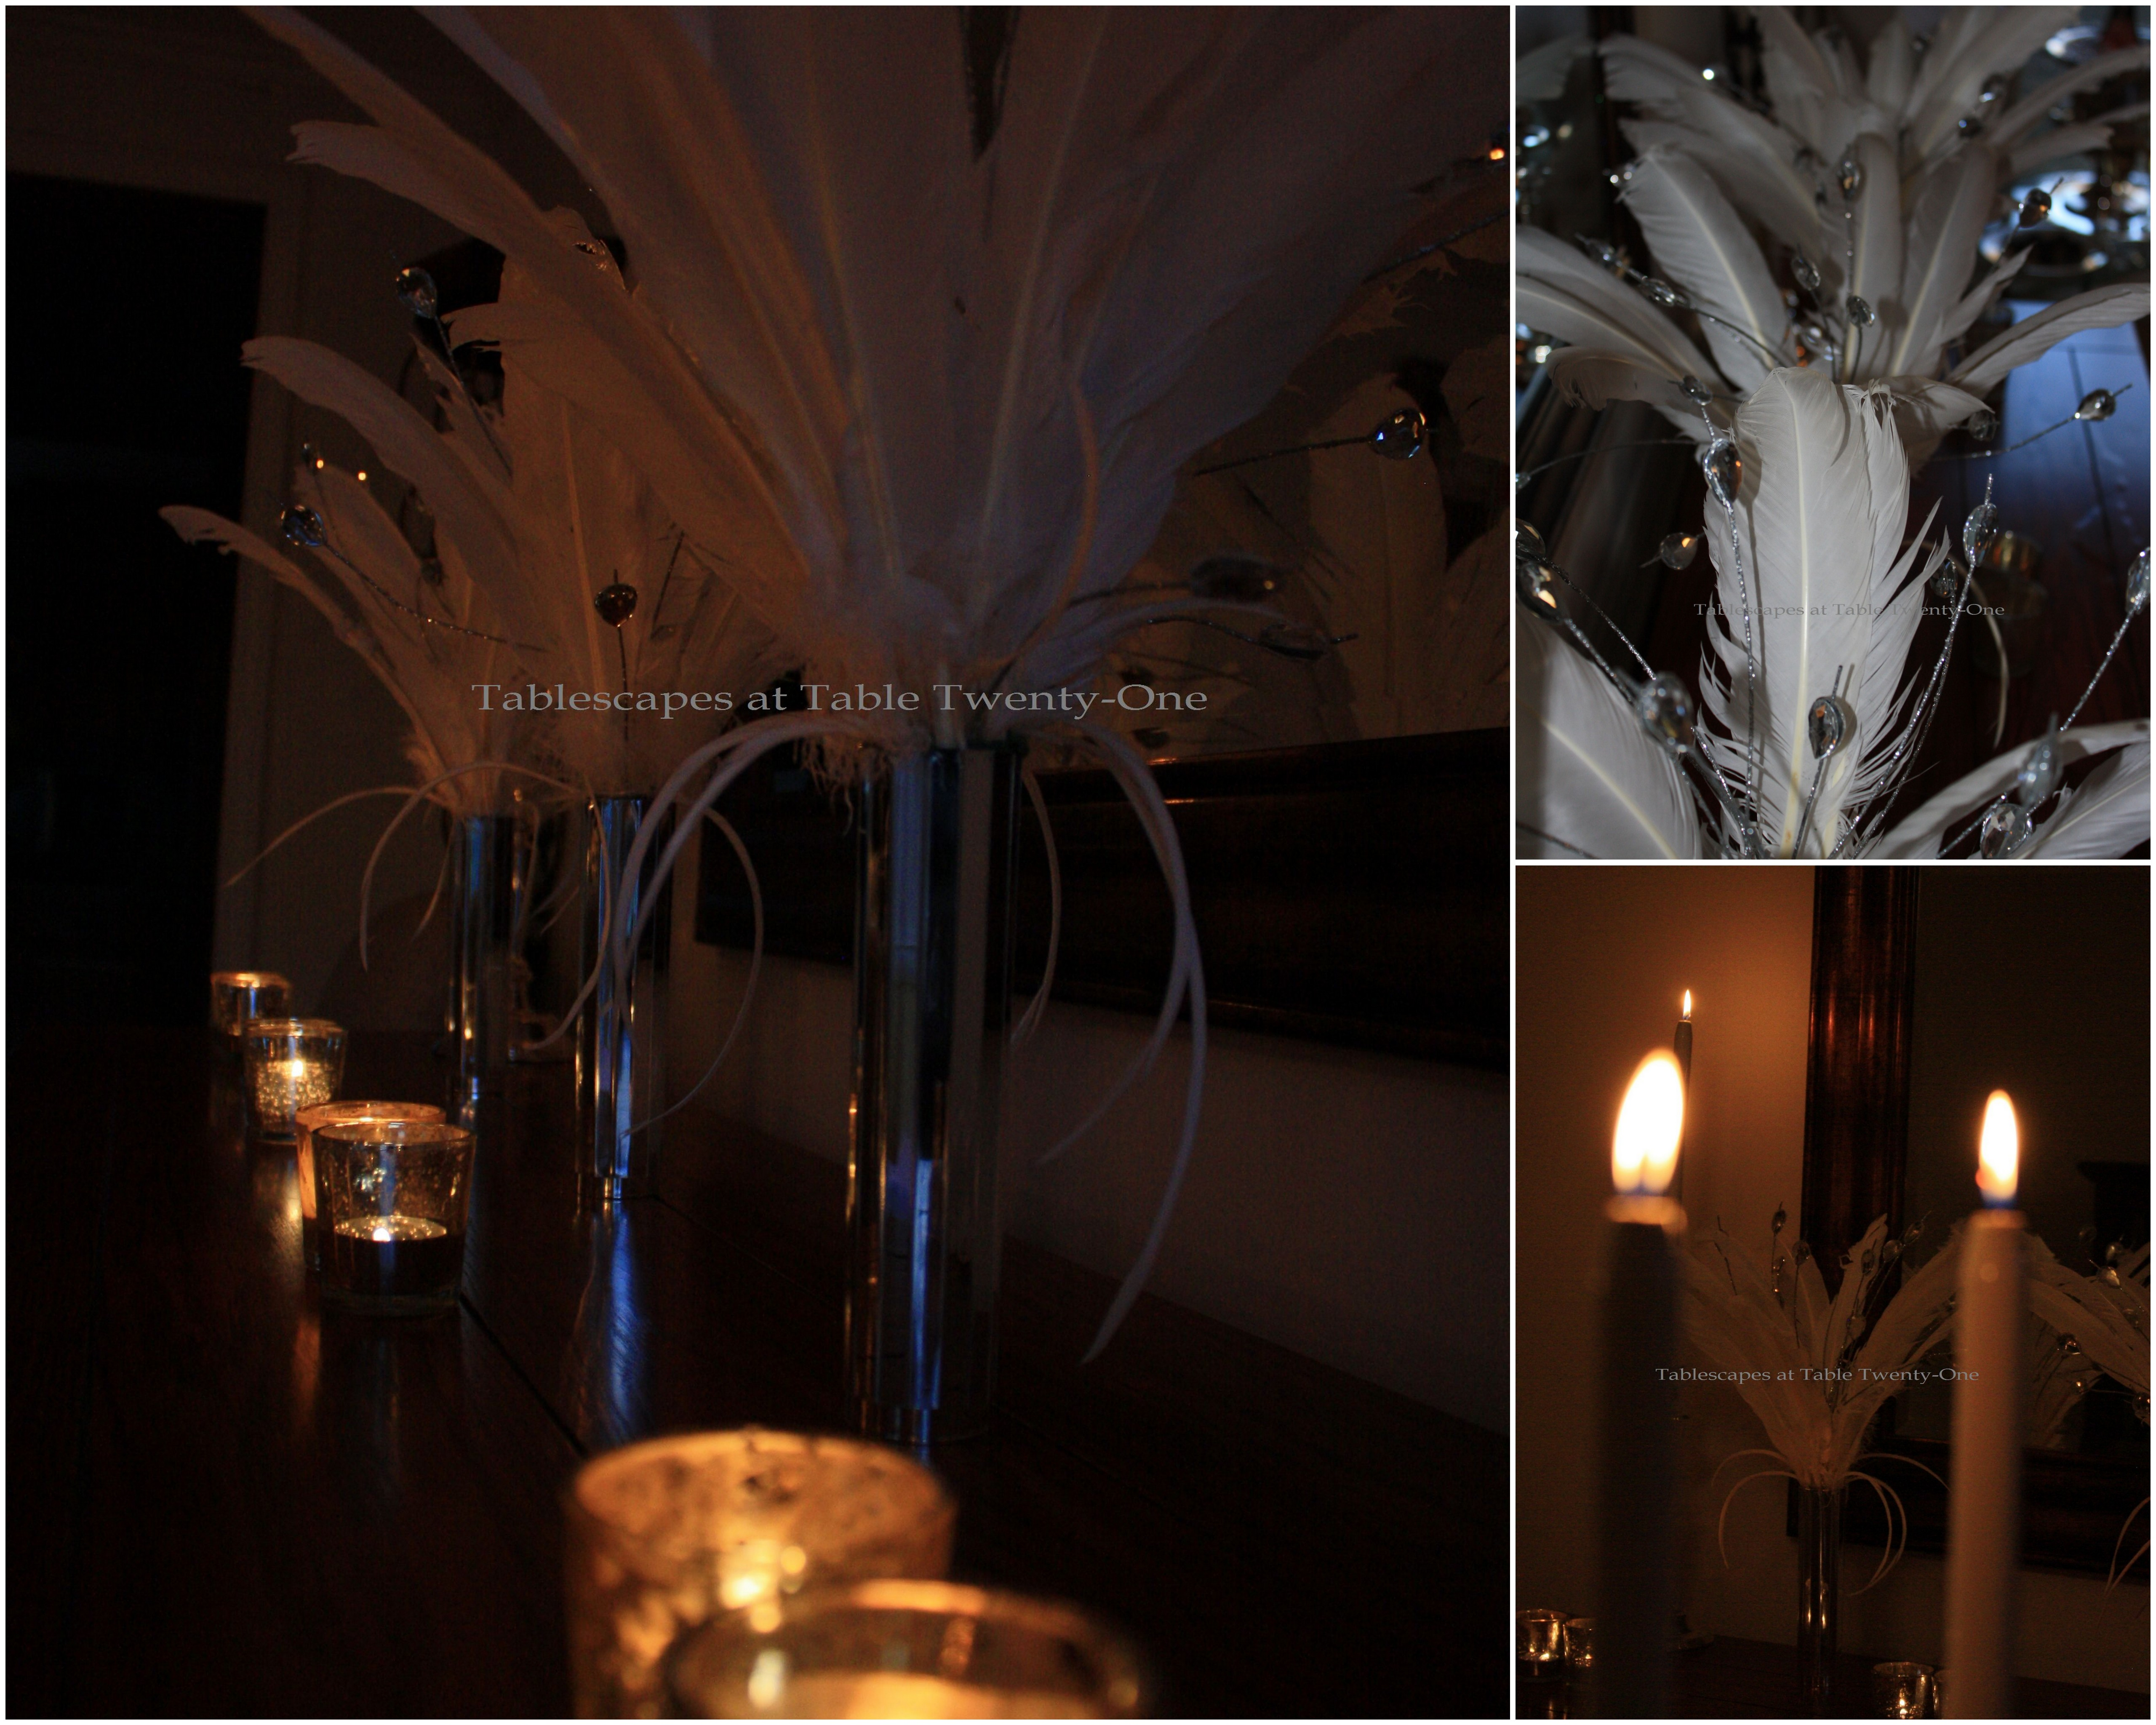 Buffet feathers & candle collage